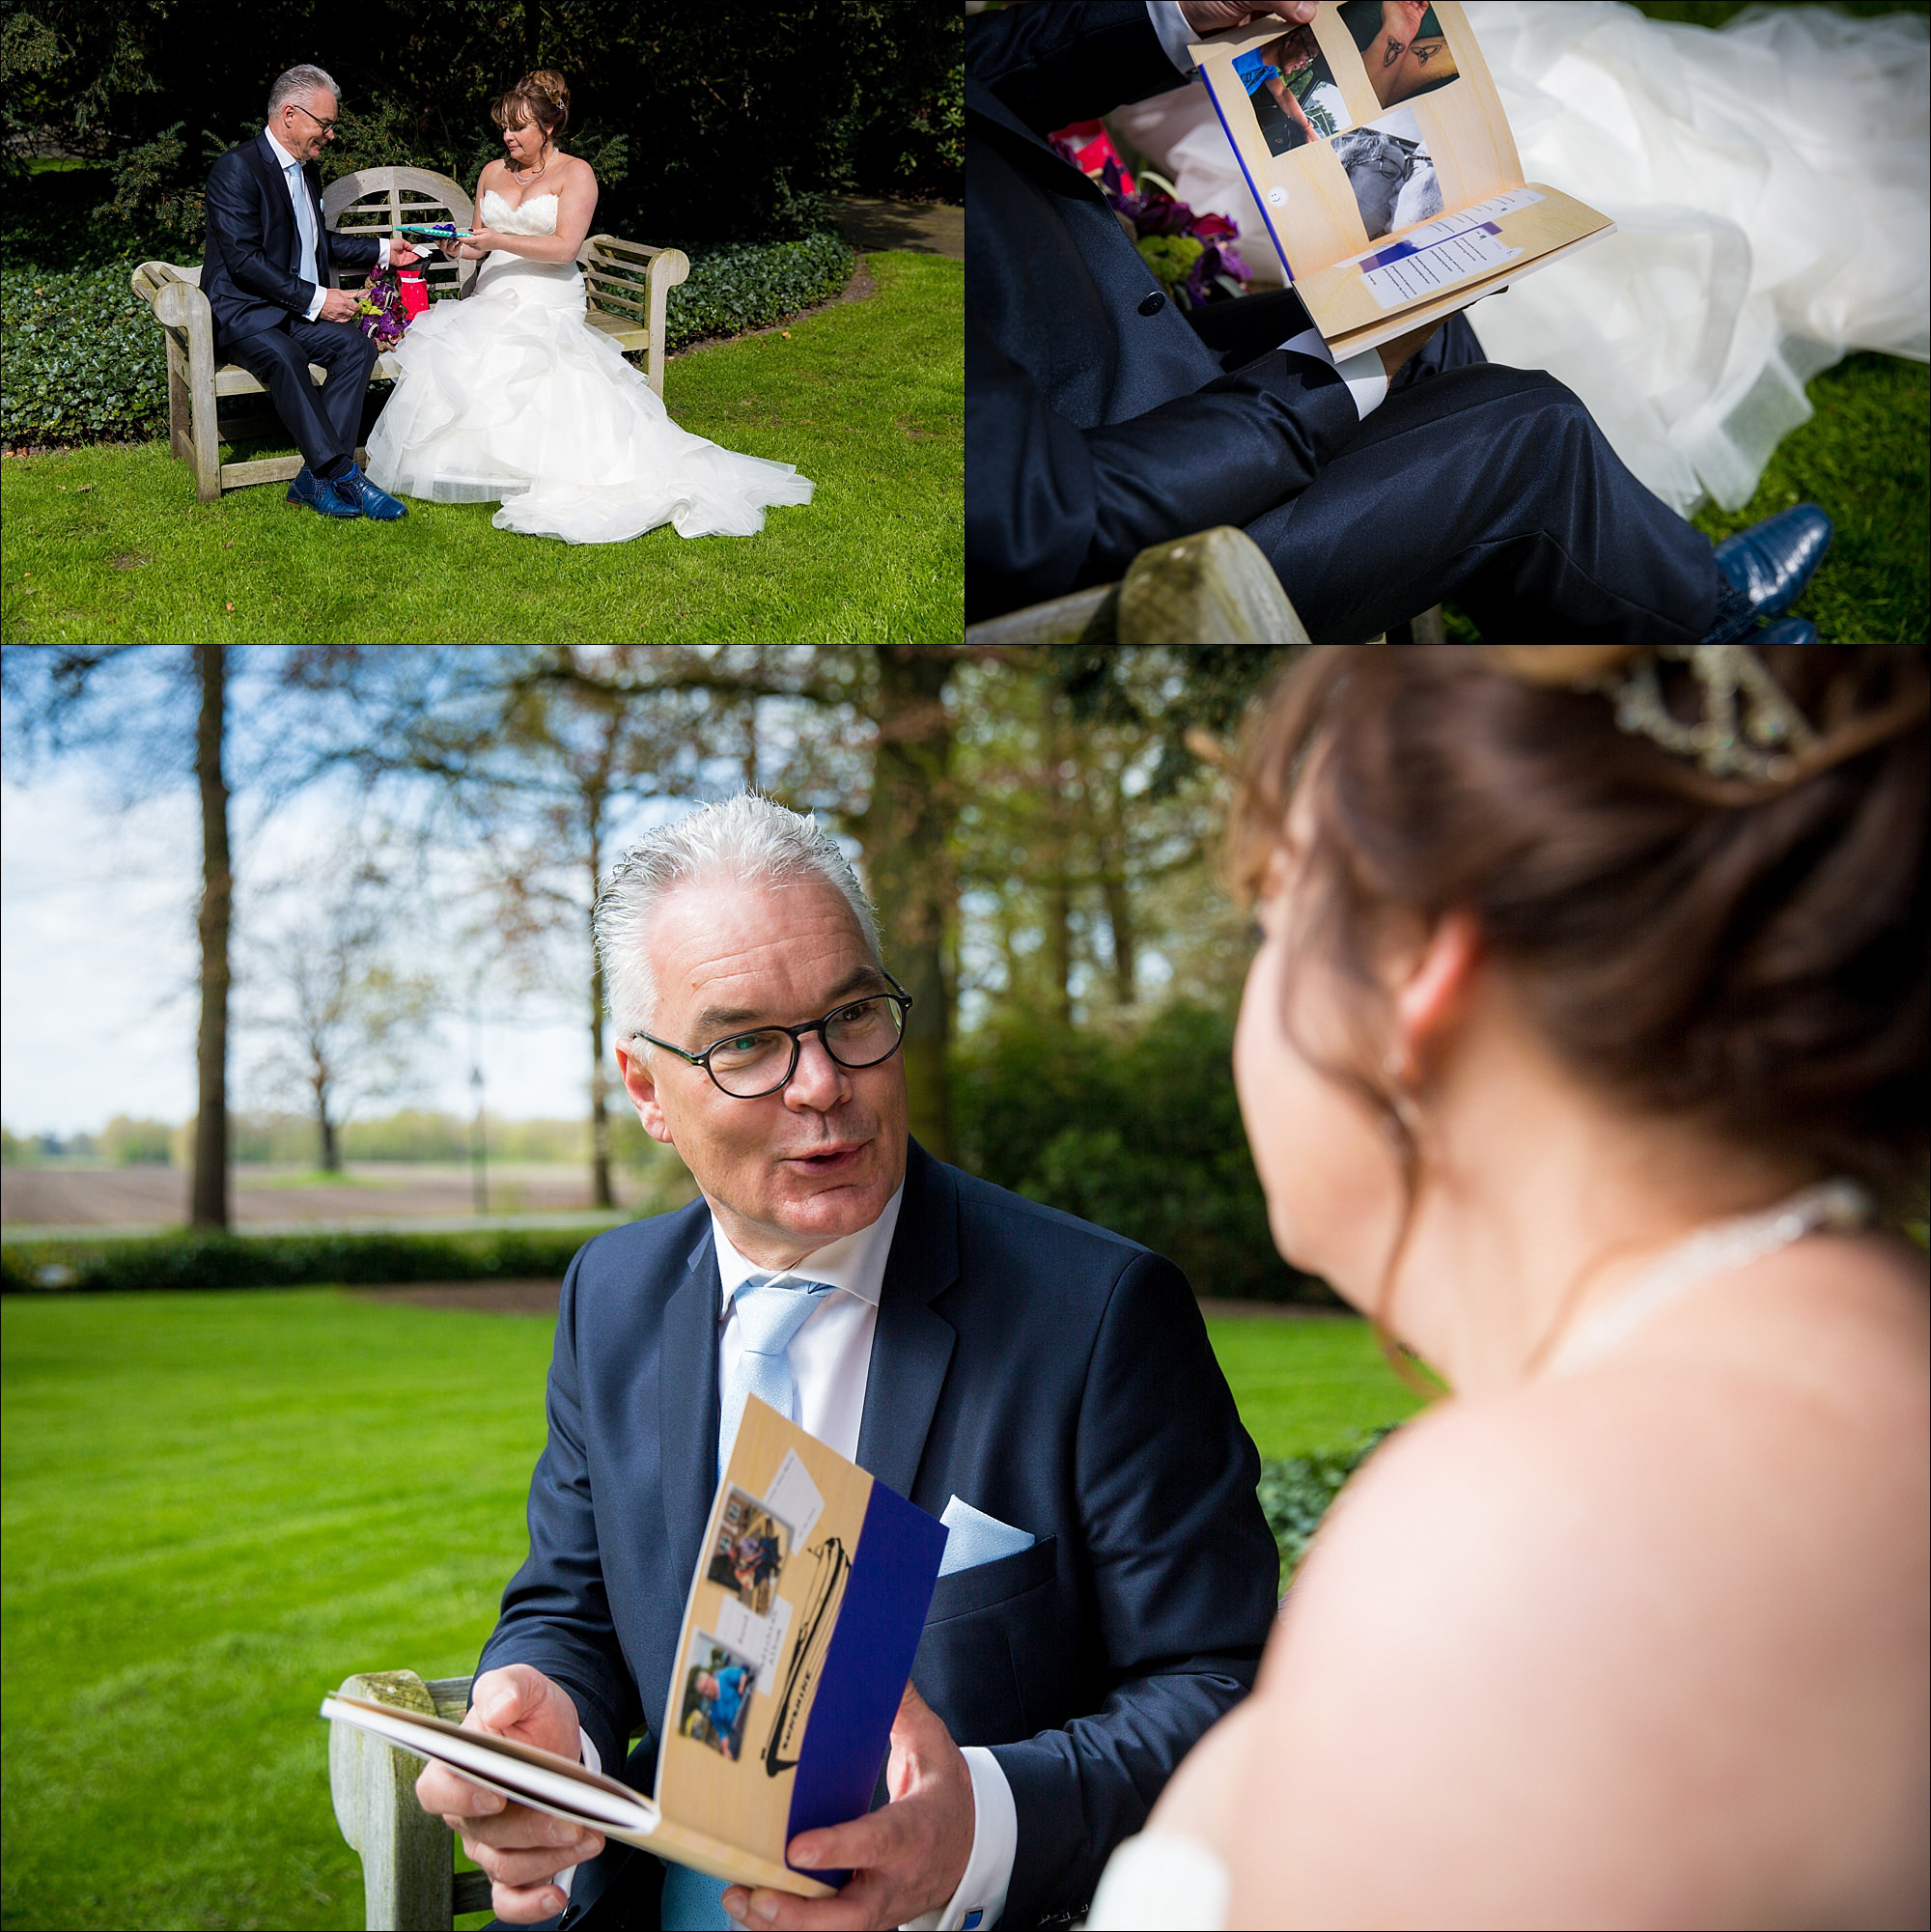 wedding photographer dublin david duignan photography real weddings Ireland 25